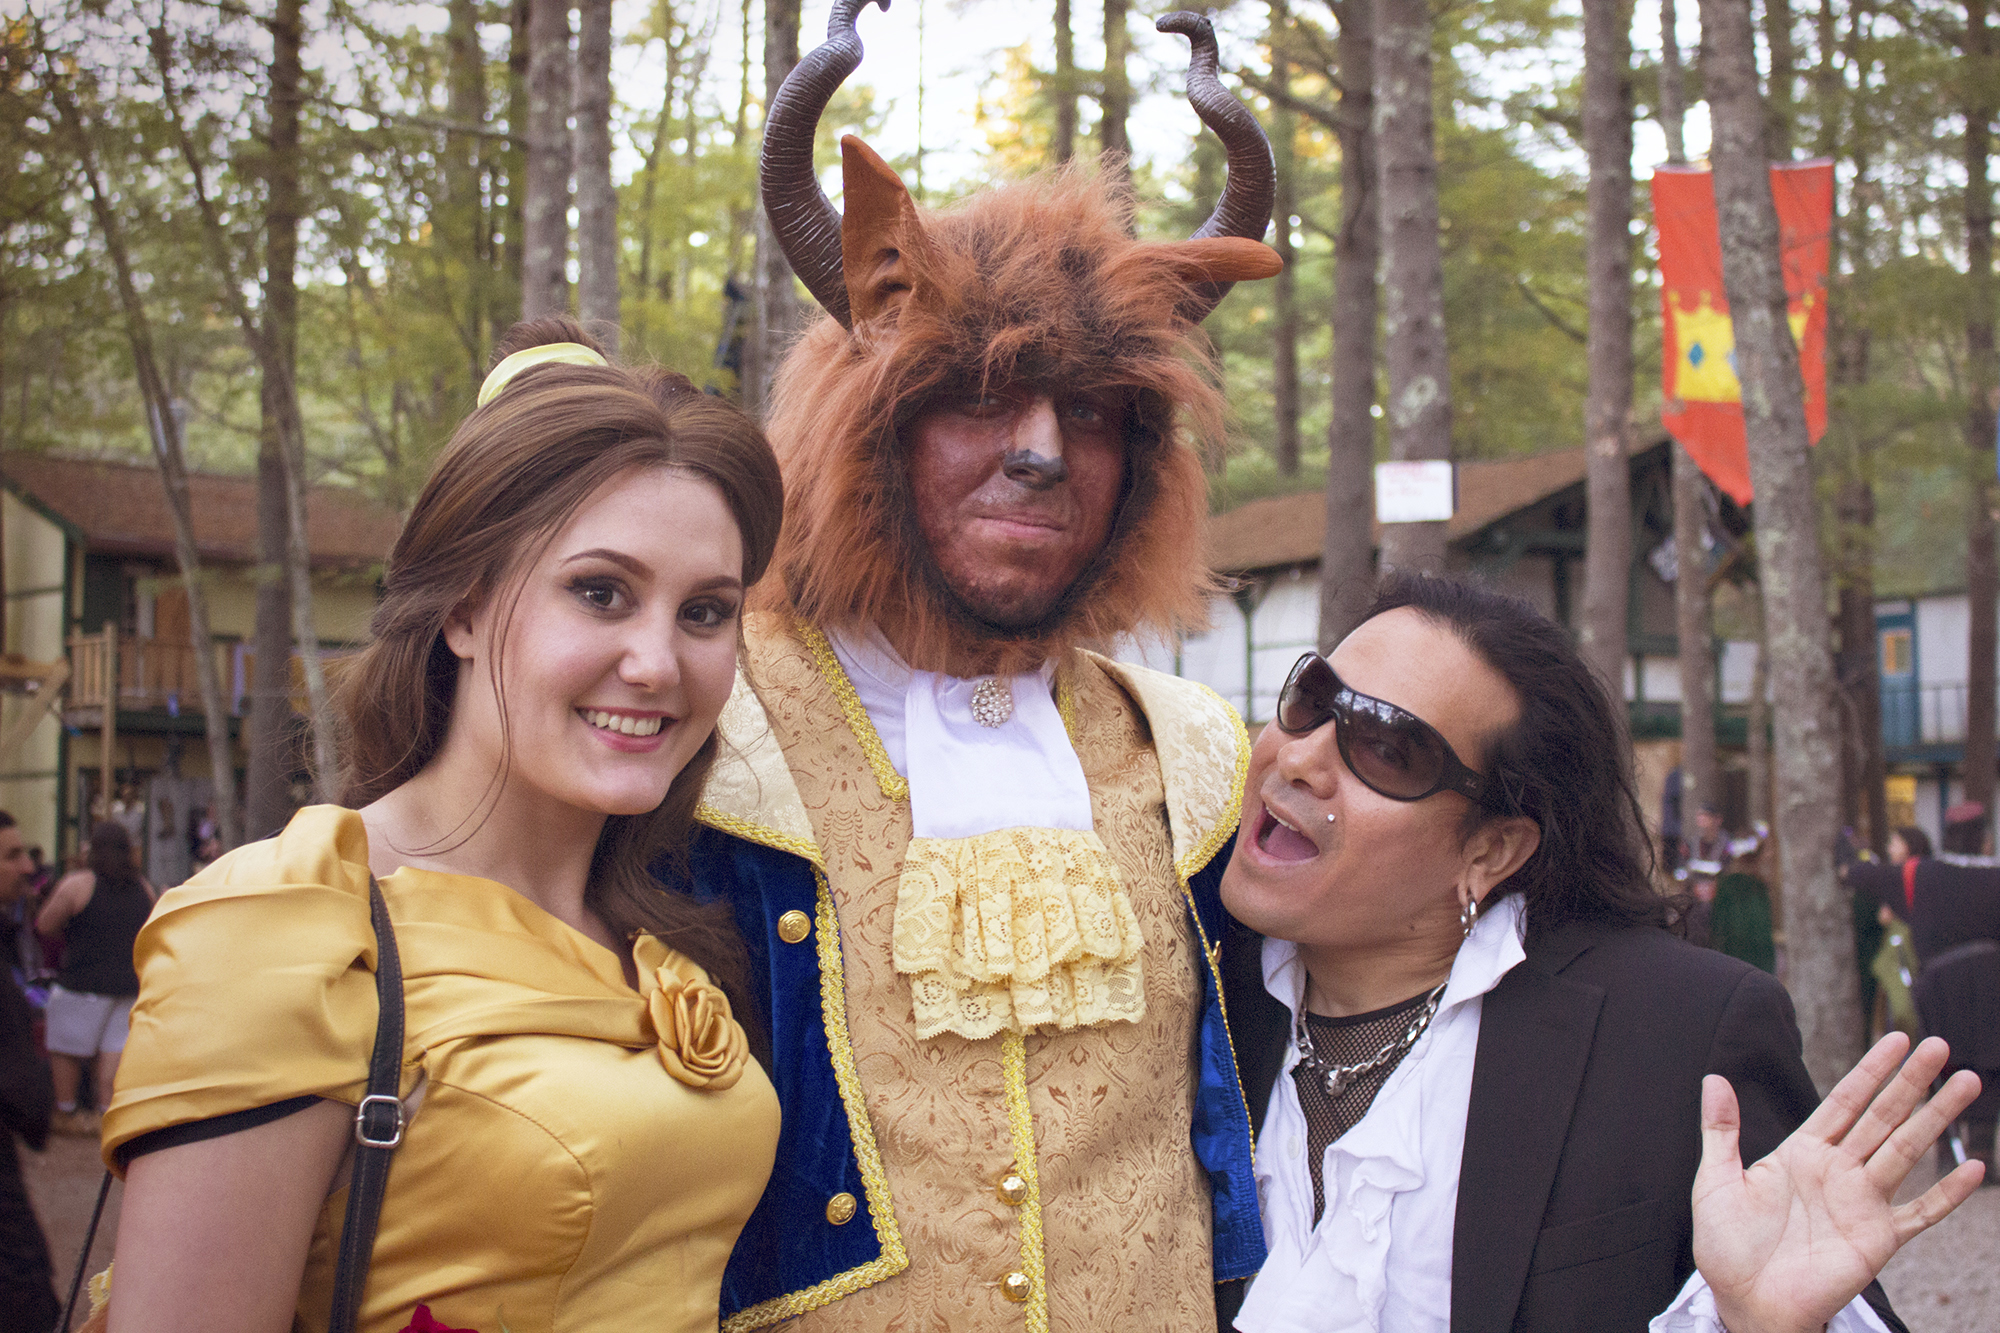 Geena Matuson and Victor Escajadillo with Beauty and the Beast at King Richard's Faire in Carver MA, October 2015.